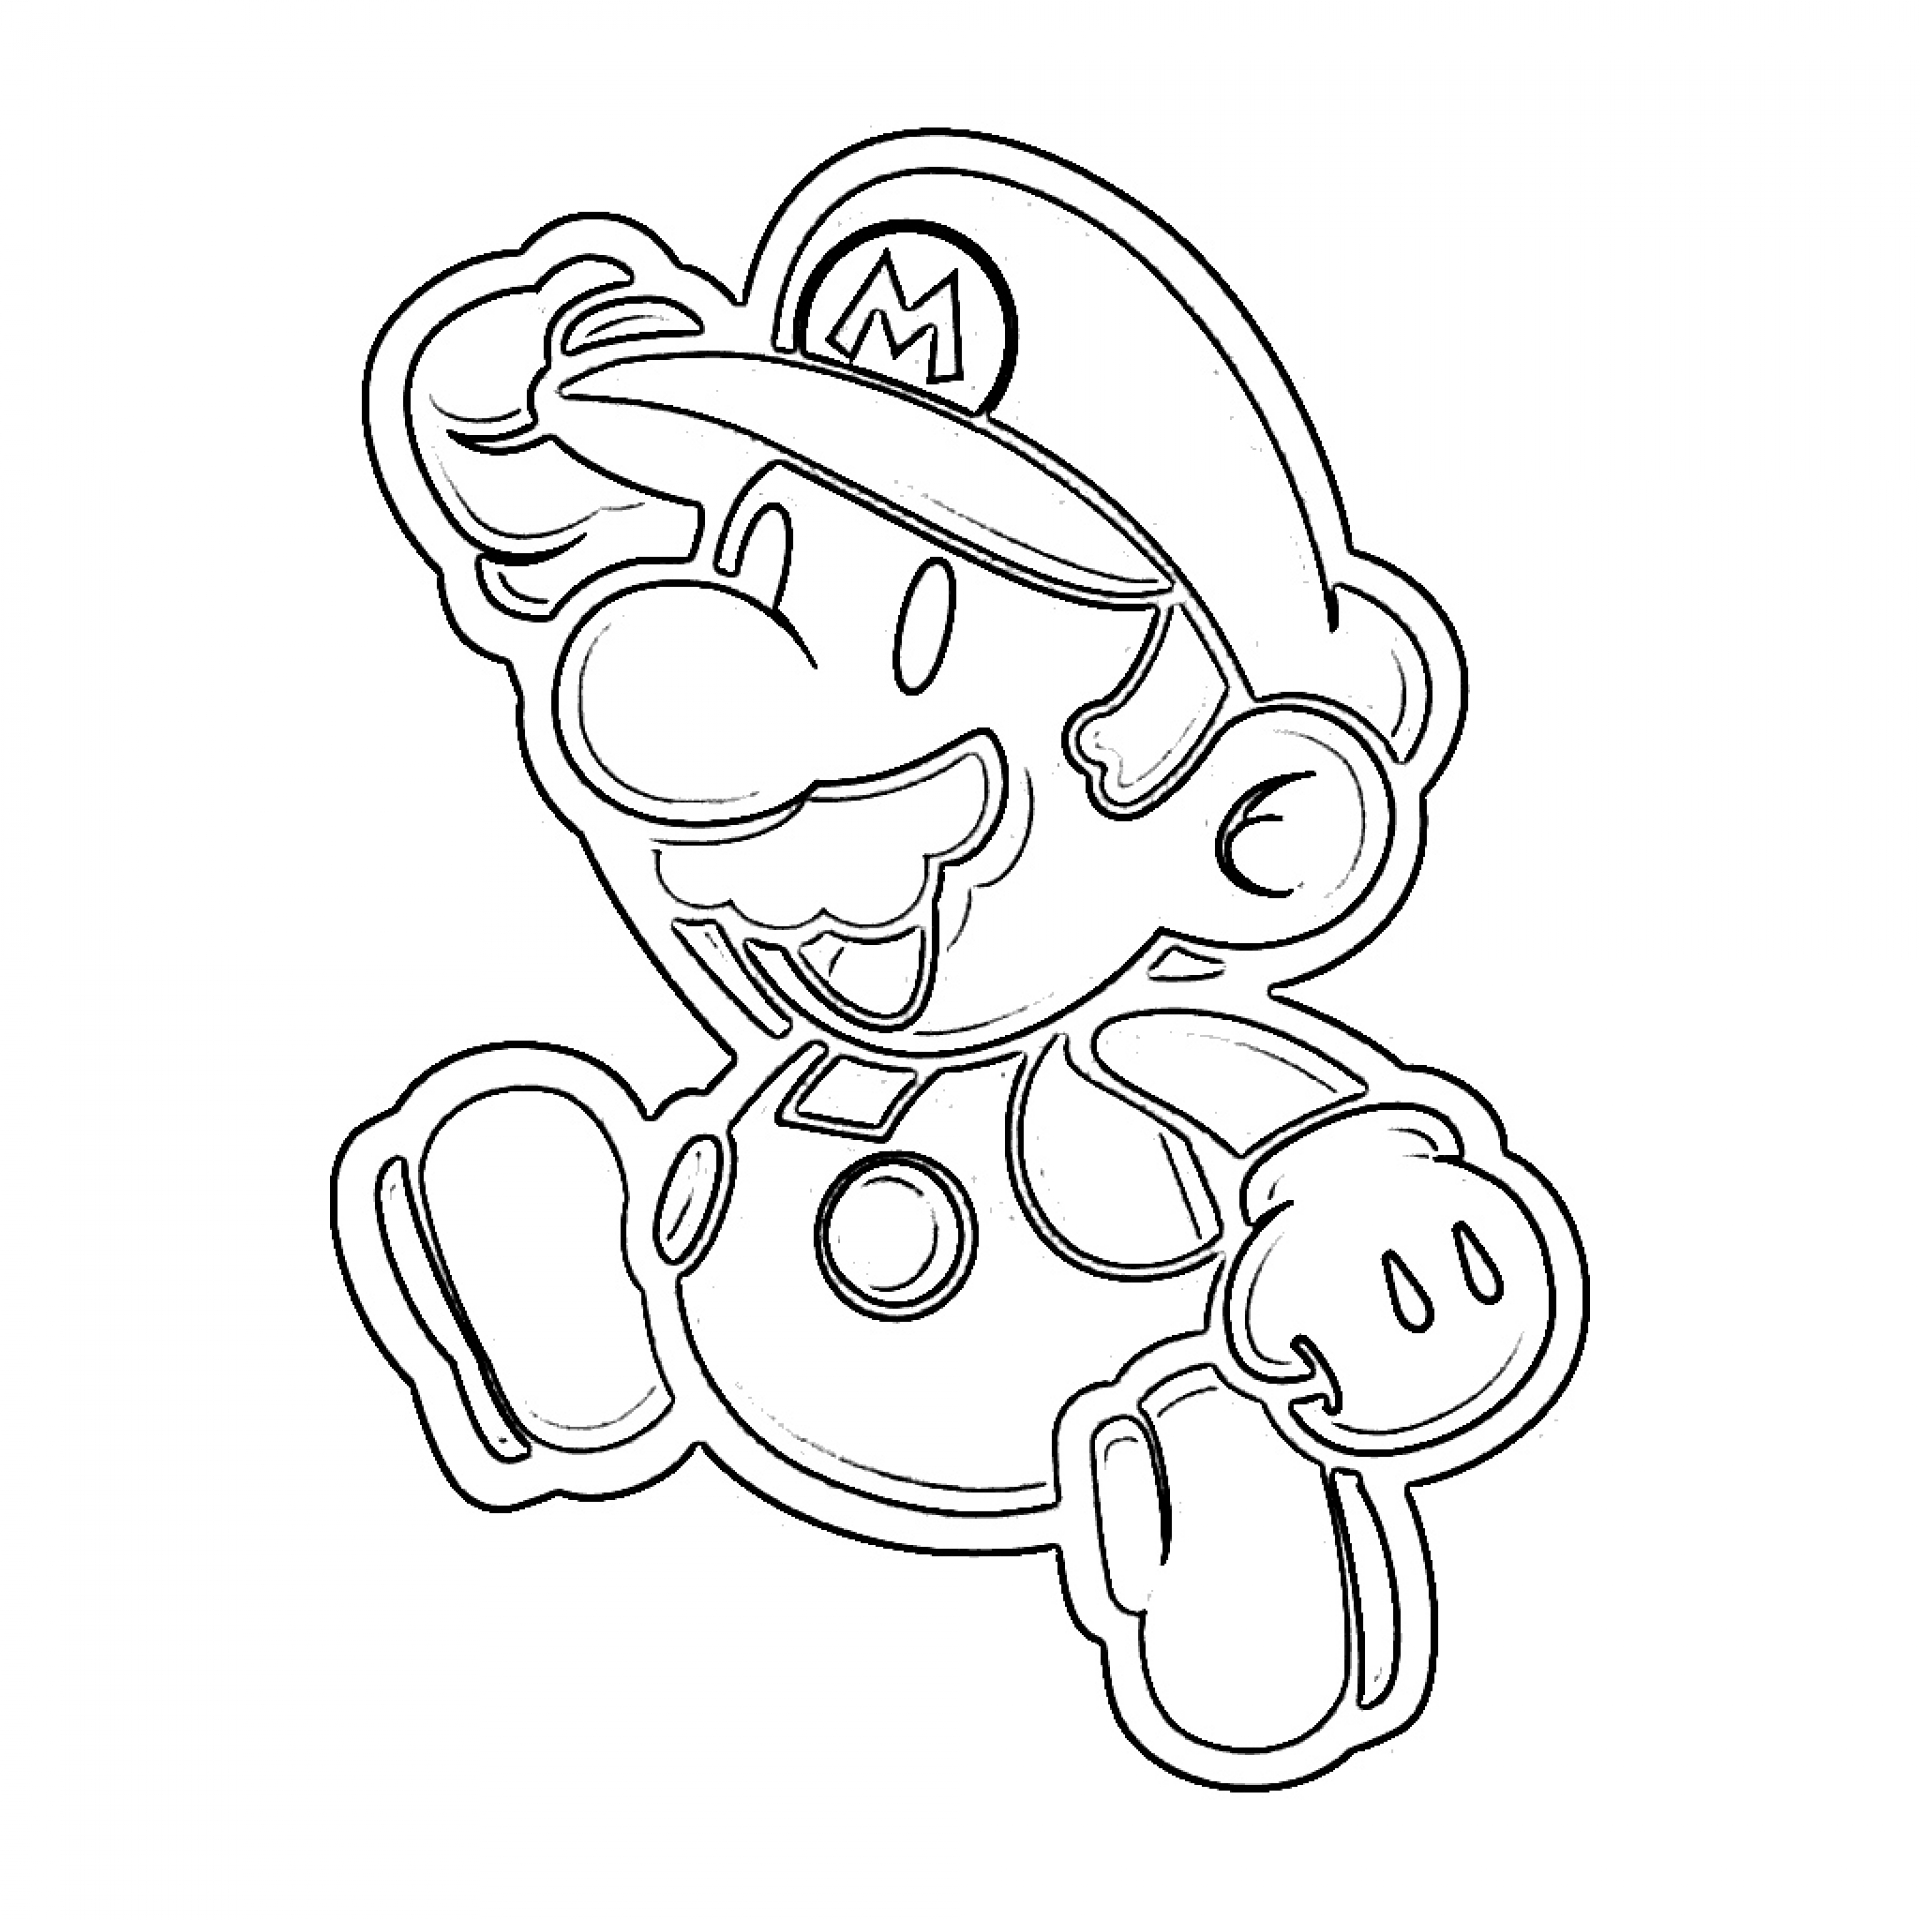 super mario bros printable coloring pages best super mario coloring pages collection super mario coloring super bros printable mario pages